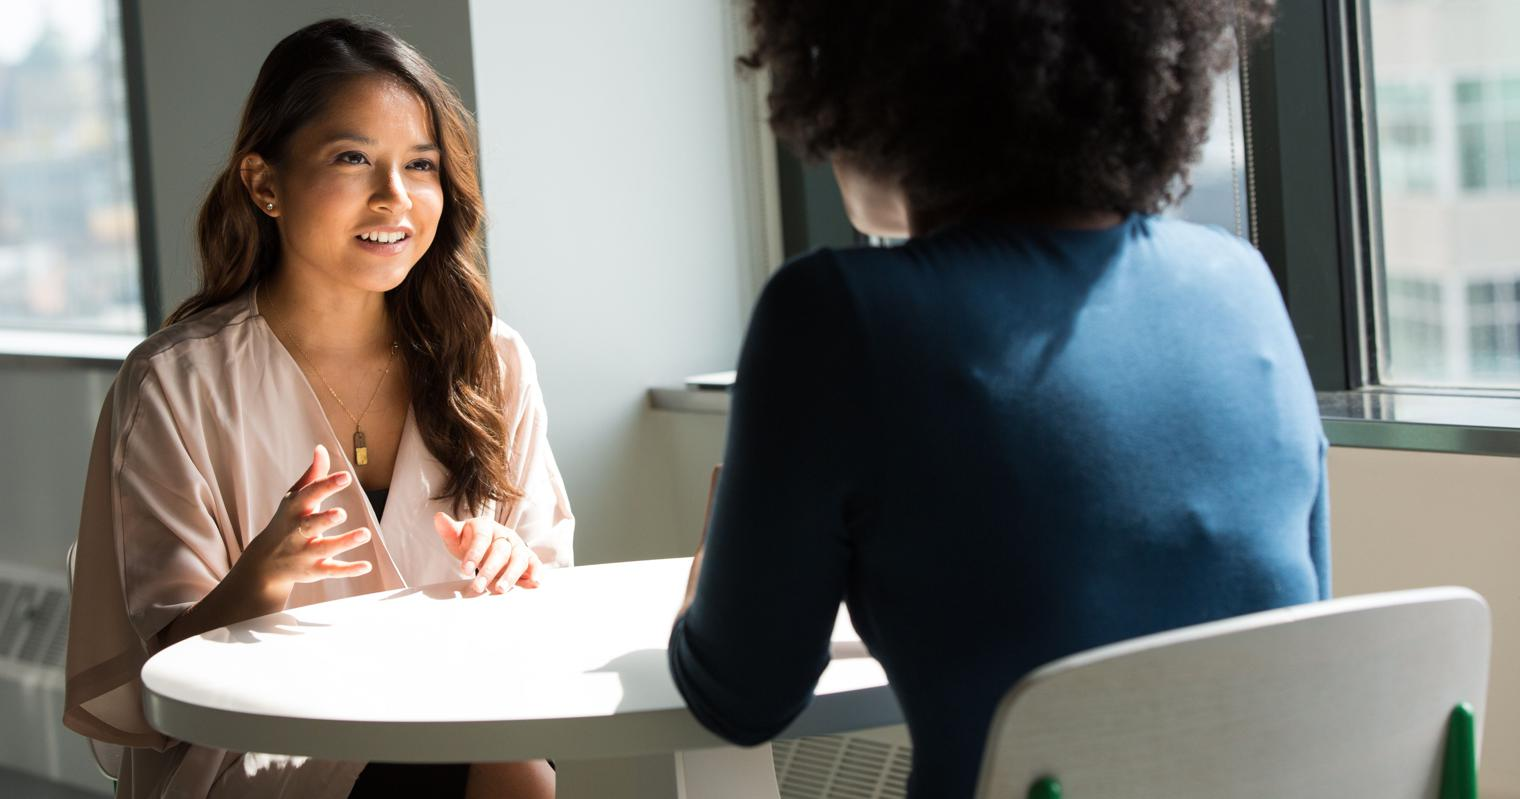 Nearly 60% of Candidates Say A Company's Mission And Values Sparked Their Interest In Interviewing For A Role